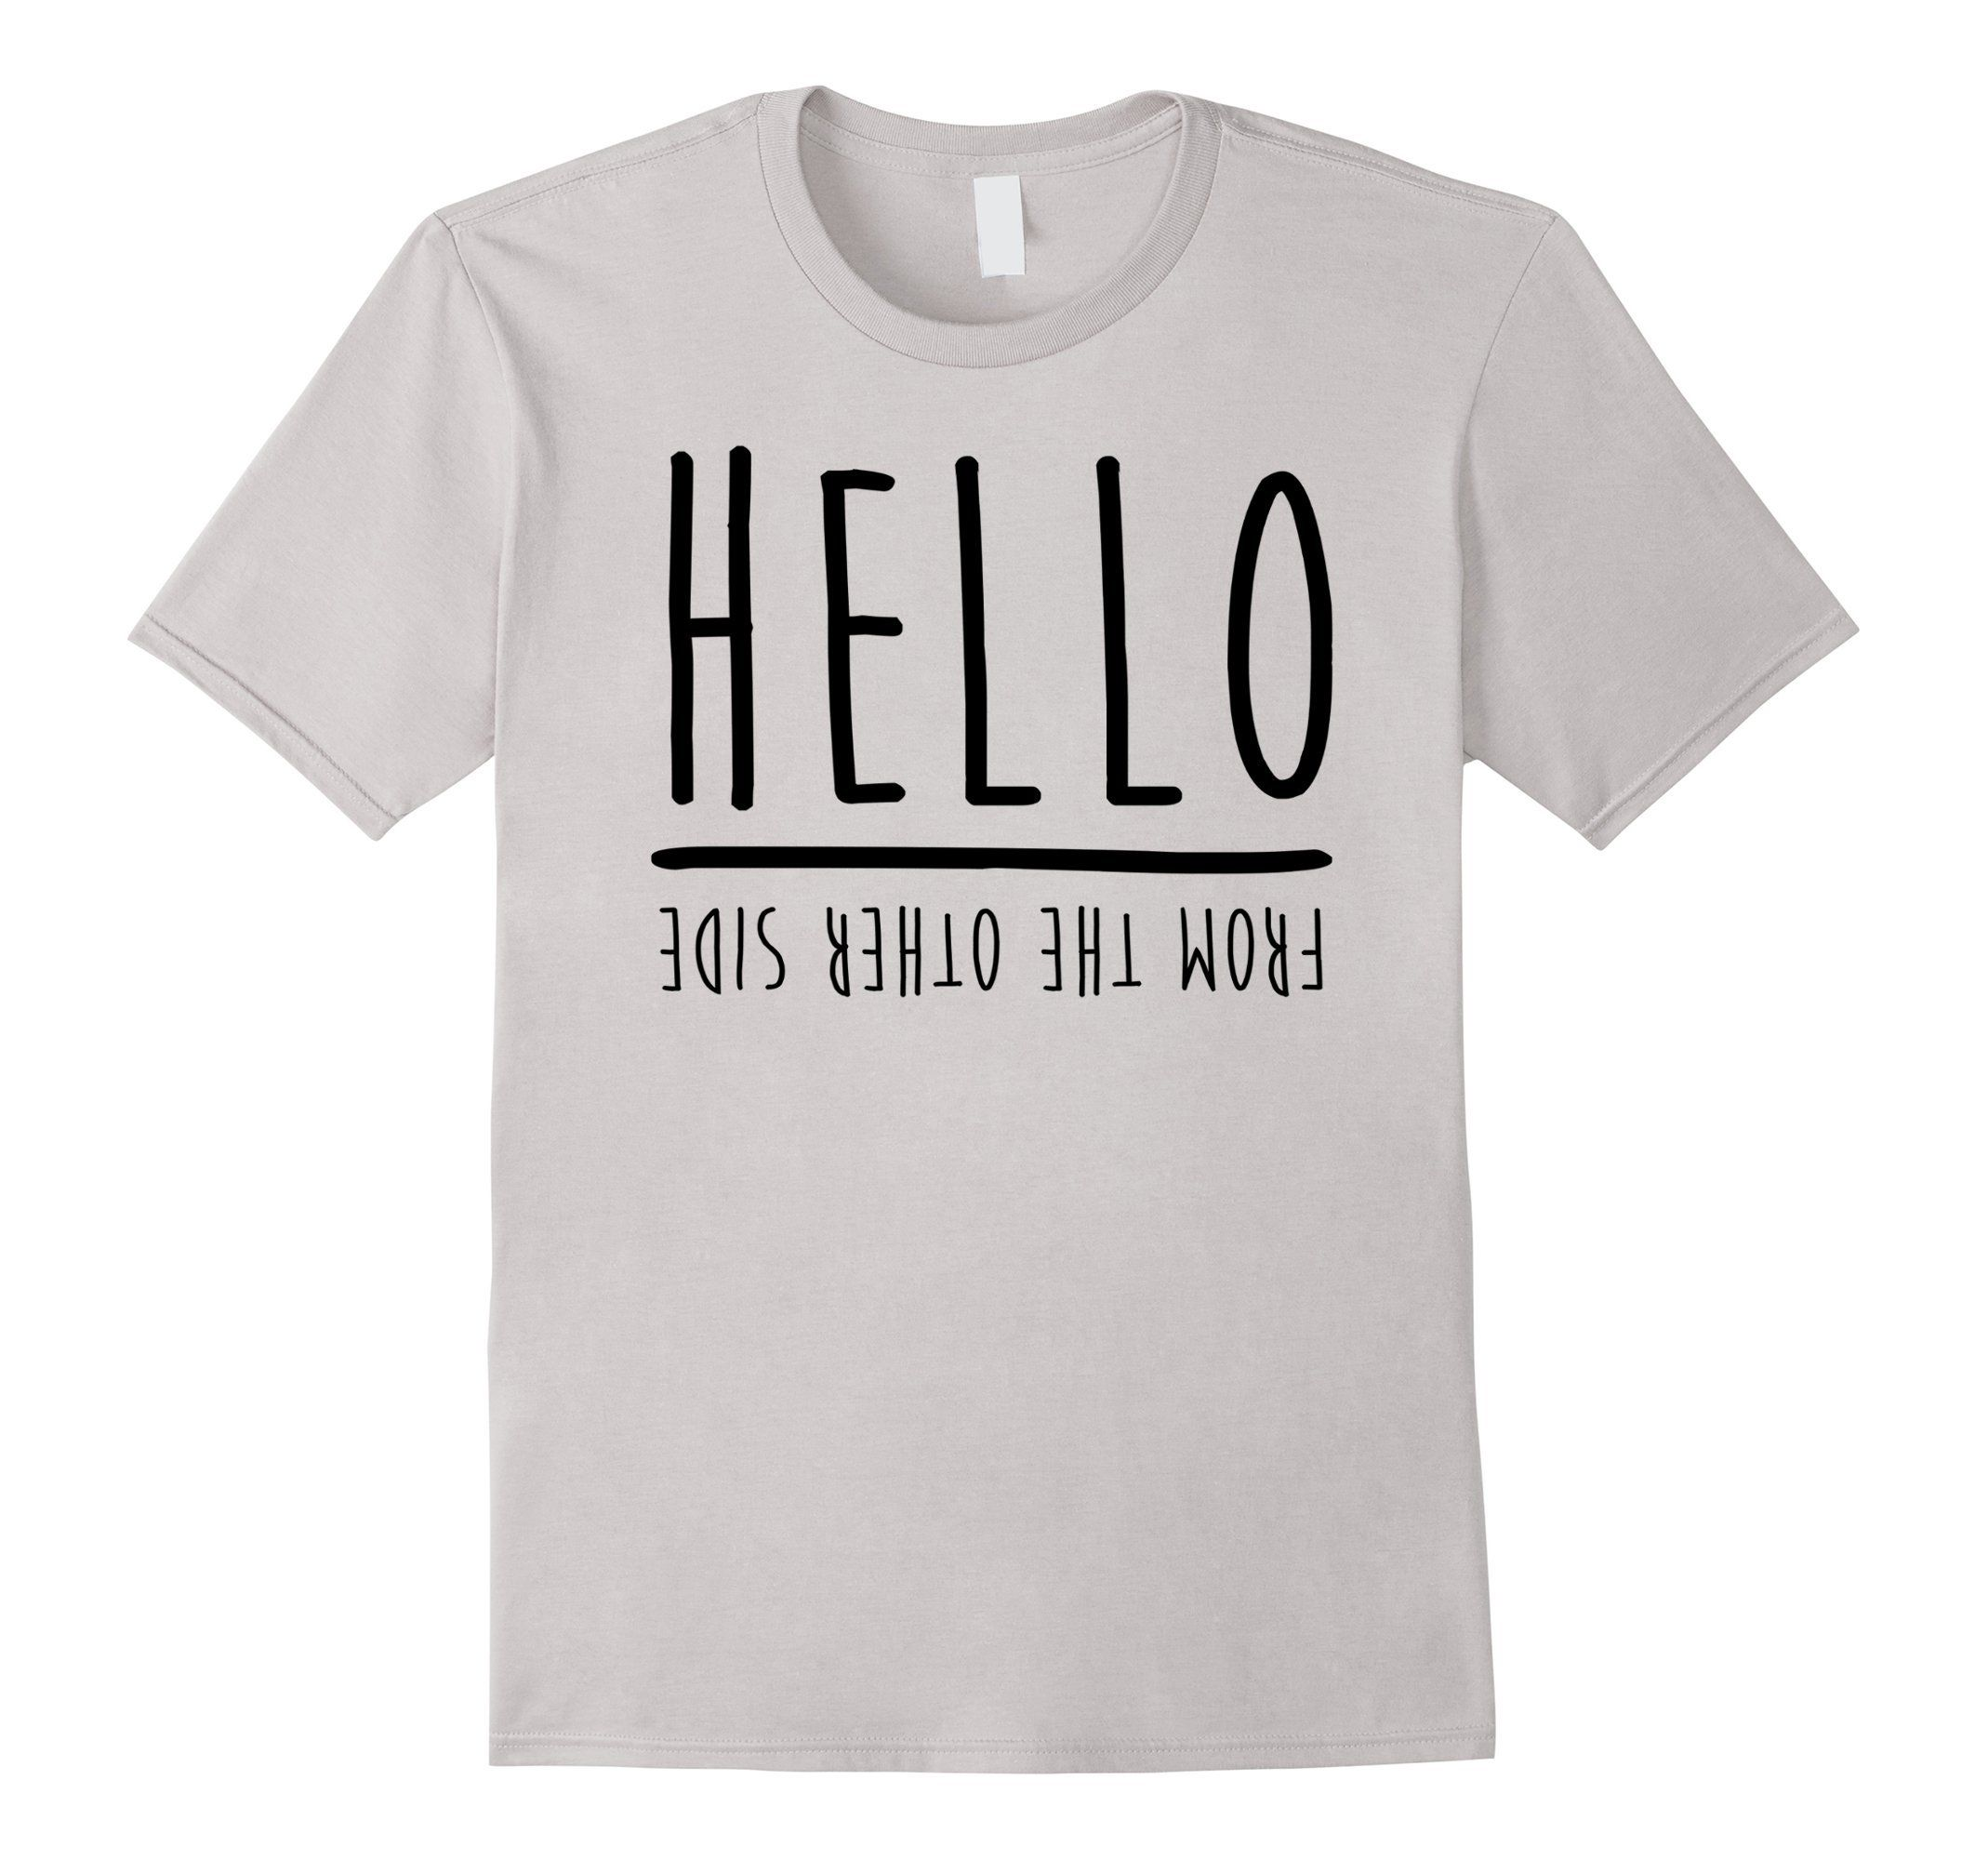 Black t shirt amazon - Amazon Com Adele T Shirt Hello From The Other Side Clothing